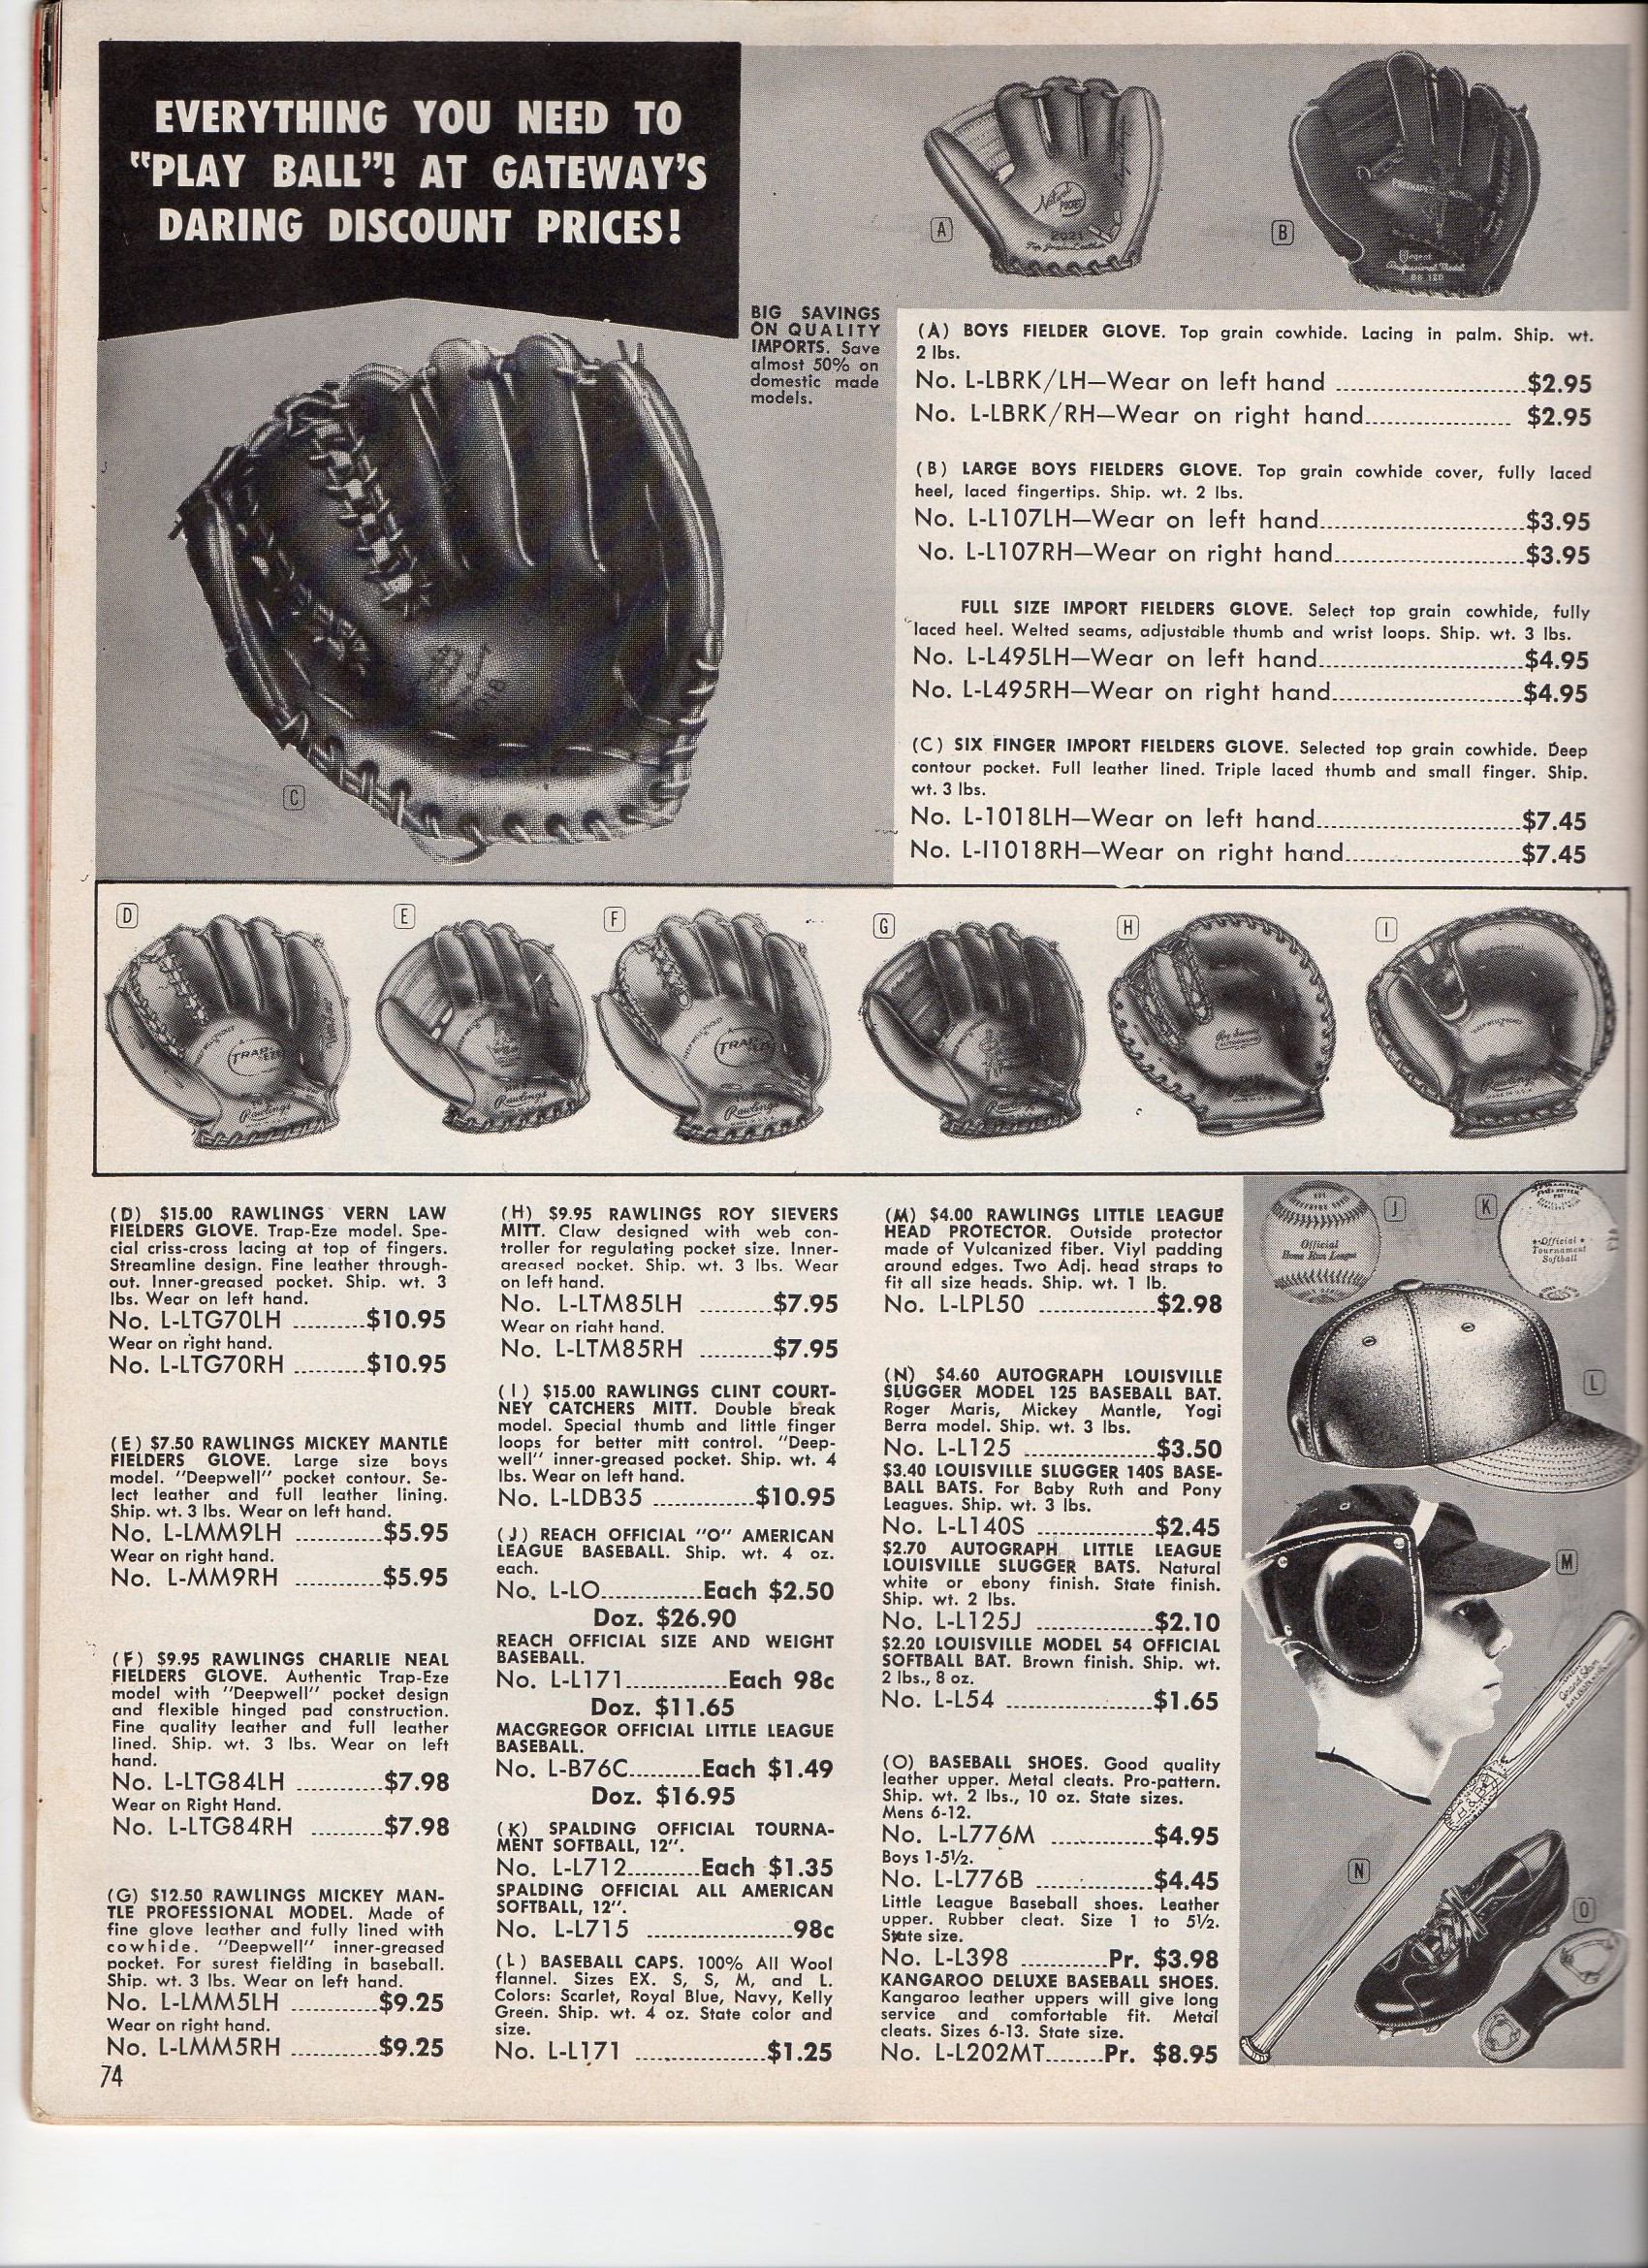 1962 gateway spring and summer catalog